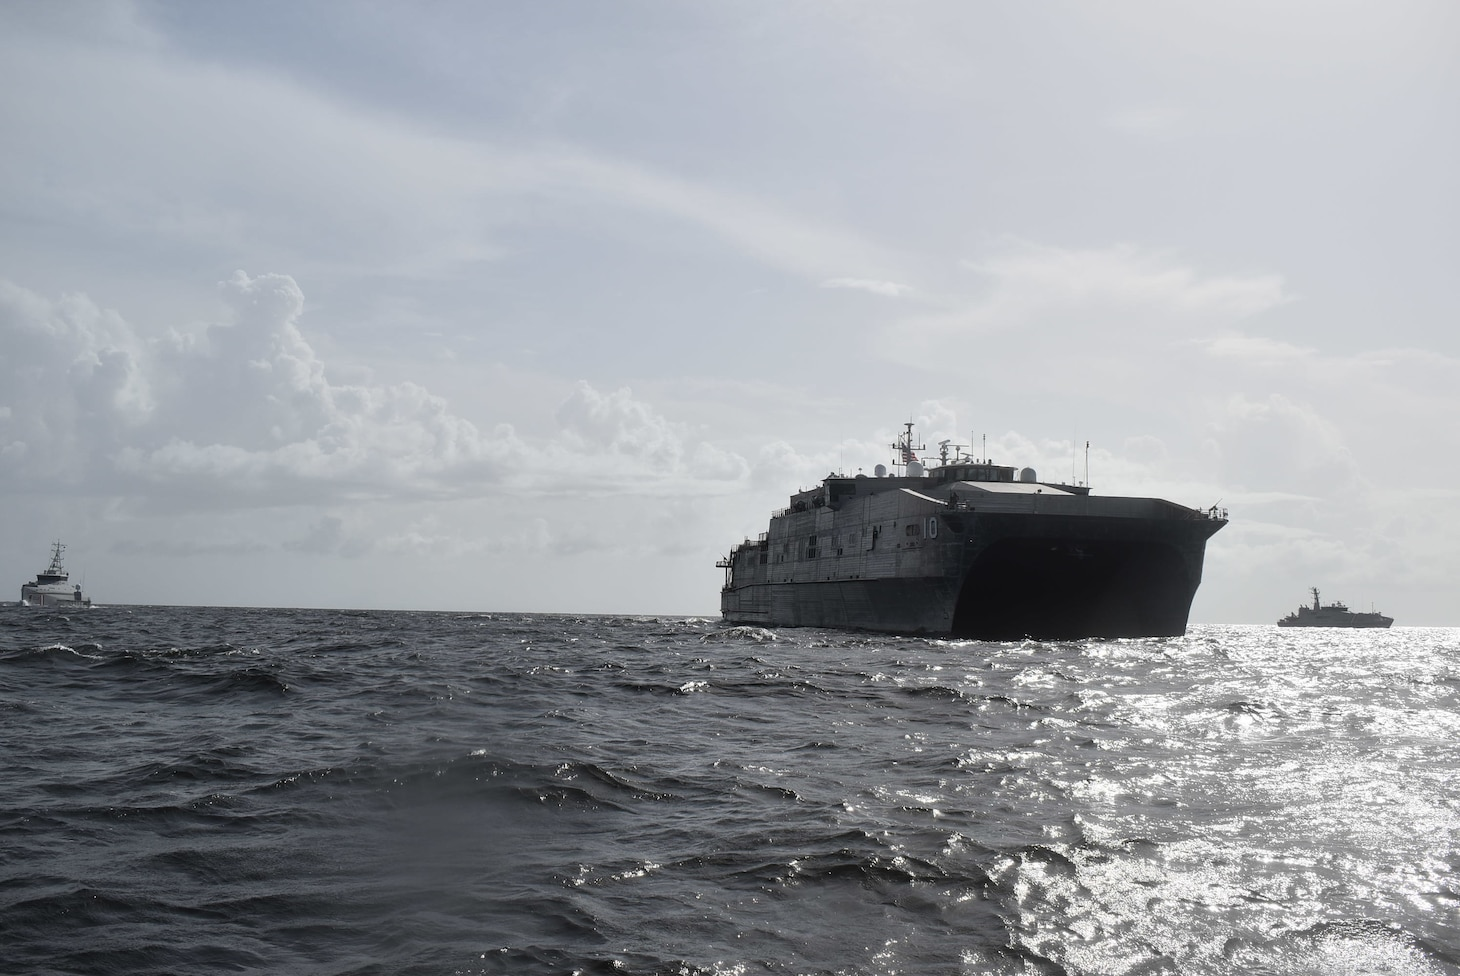 he Spearhead-class expeditionary fast transport ship USNS Burlington (T-EPF-10) conducts a maritime interdiction exercise with Trinidad and Tobago Coast Guard patrol ships TTS Carli Bay (CG 28) and TTS Scarborough (CG 42), Sept. 15, 2021.